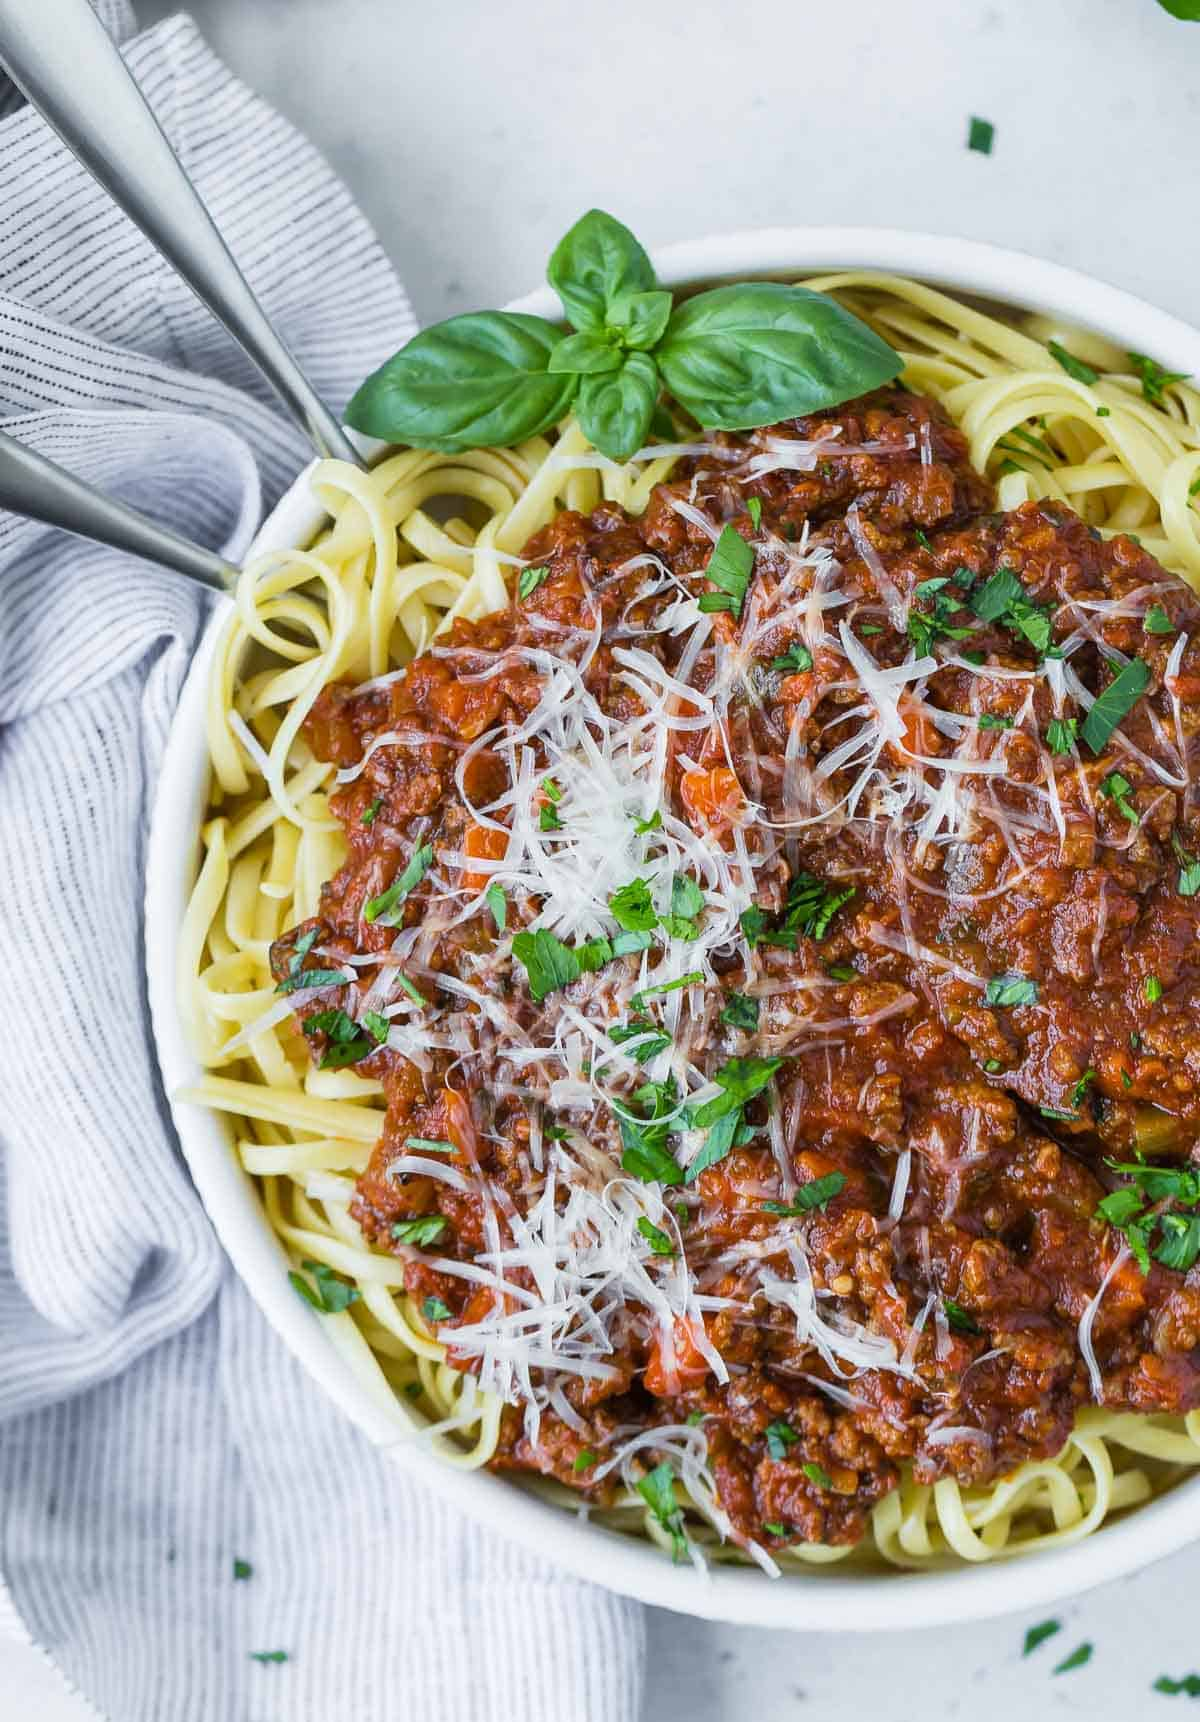 Overhead view of spaghetti and instant pot bolognese sauce in a white bowl, garnished with cheese and fresh basil.